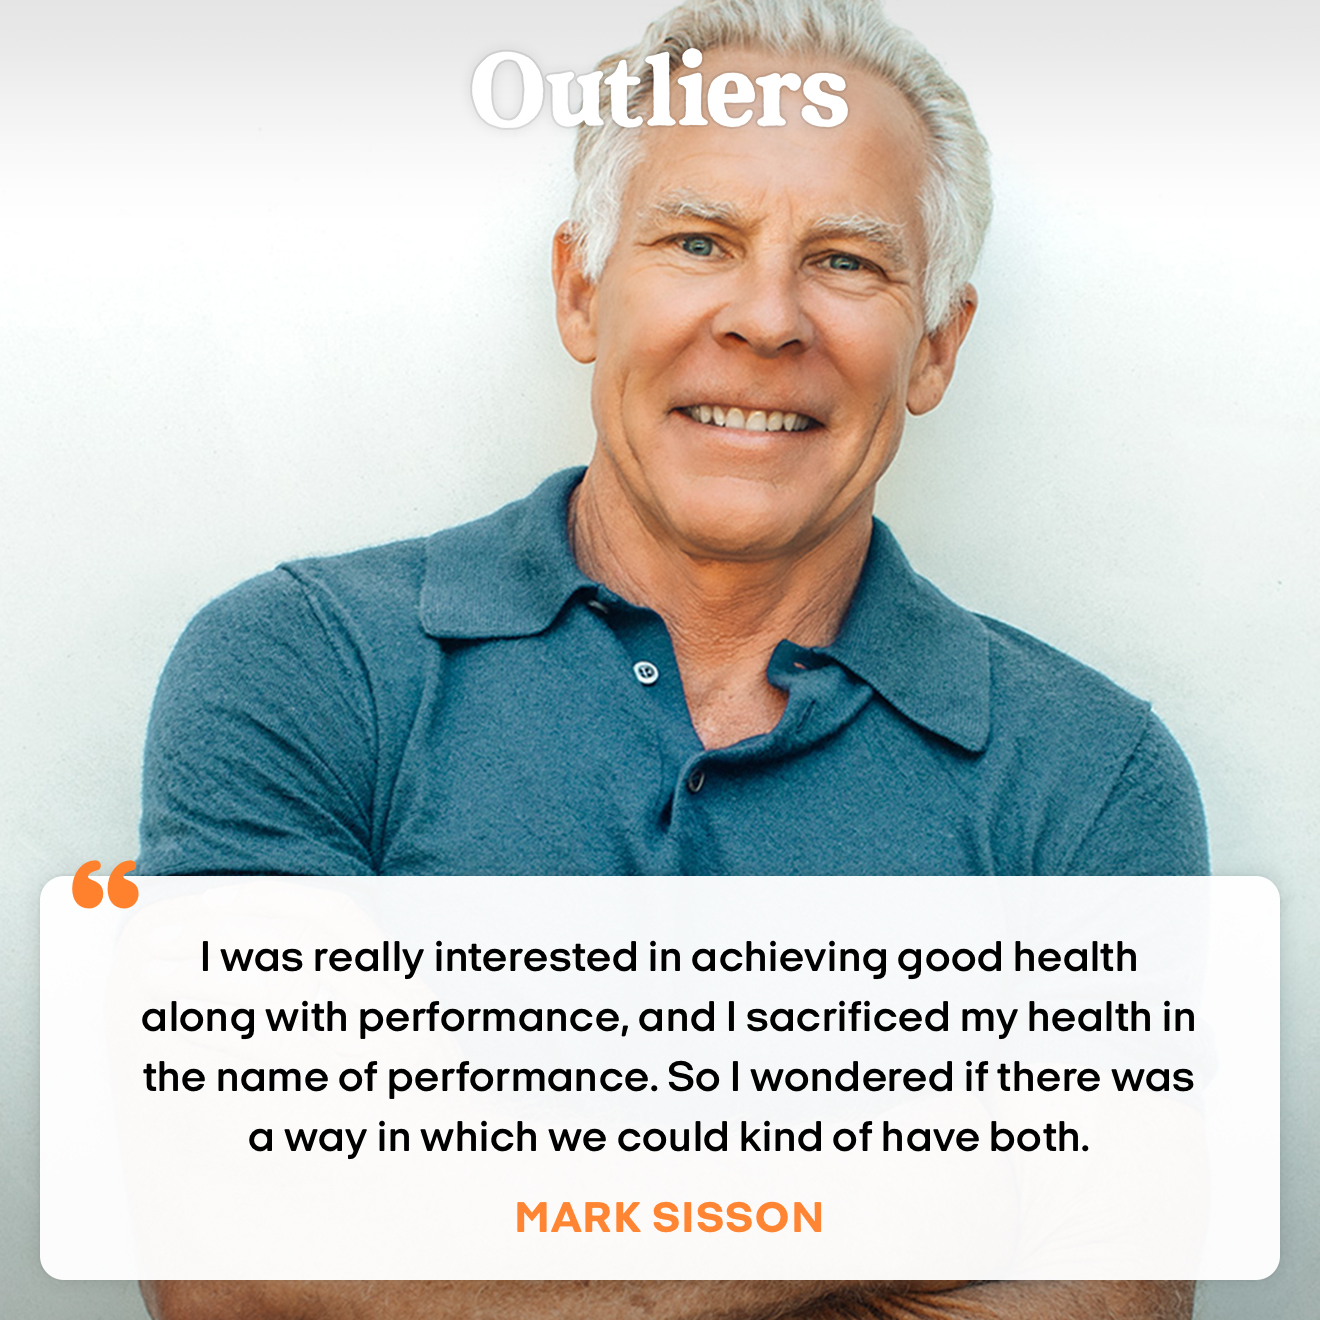 """I was really interested in achieving good health along with performance, and I scarified my health in the name of performance. So I wondered if there was a way in which we could kind of have both."" — Mark Sisson"